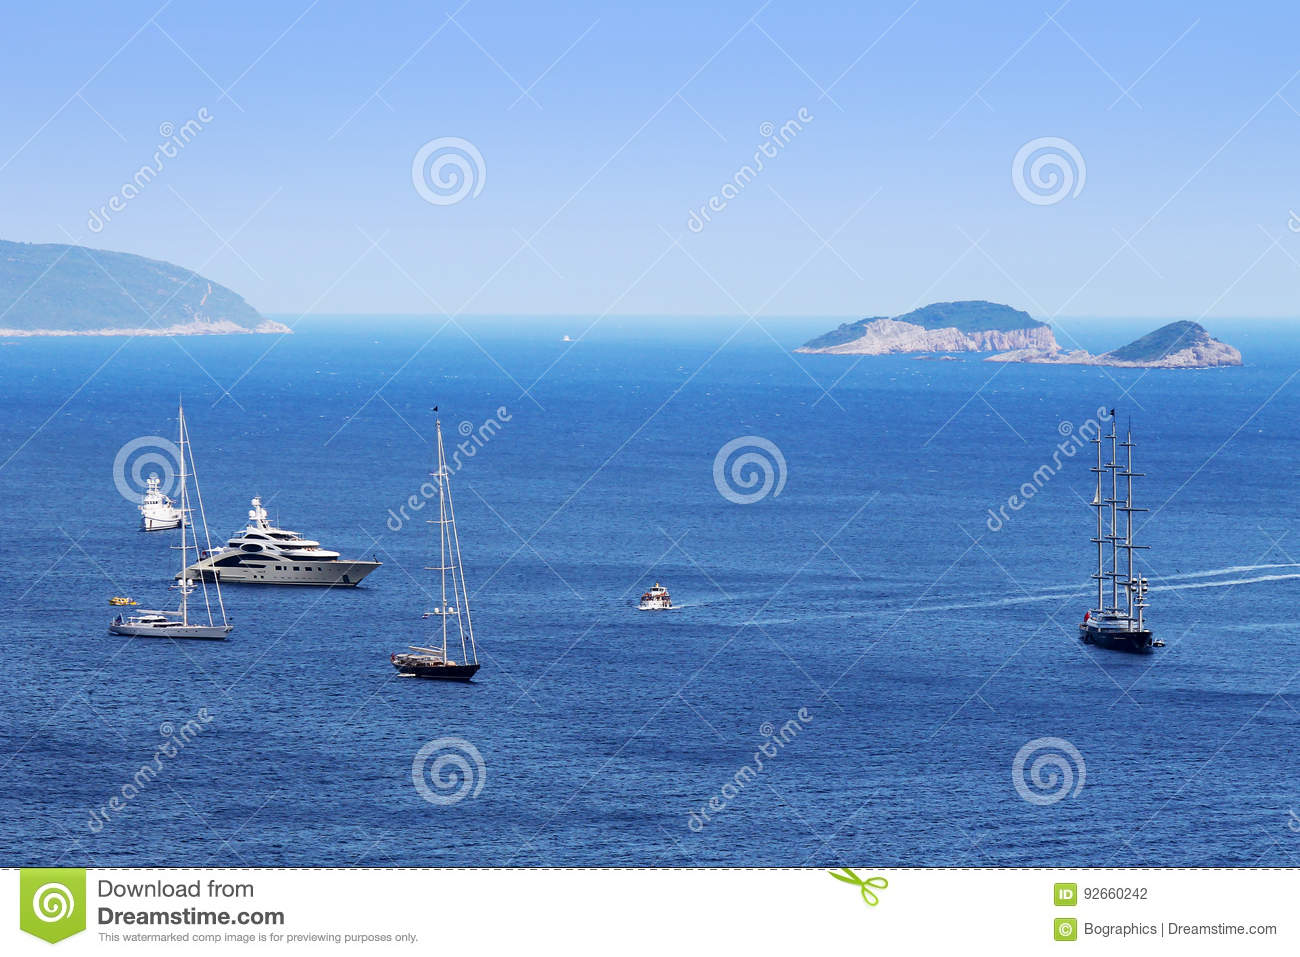 Expensive boats on large sea with island